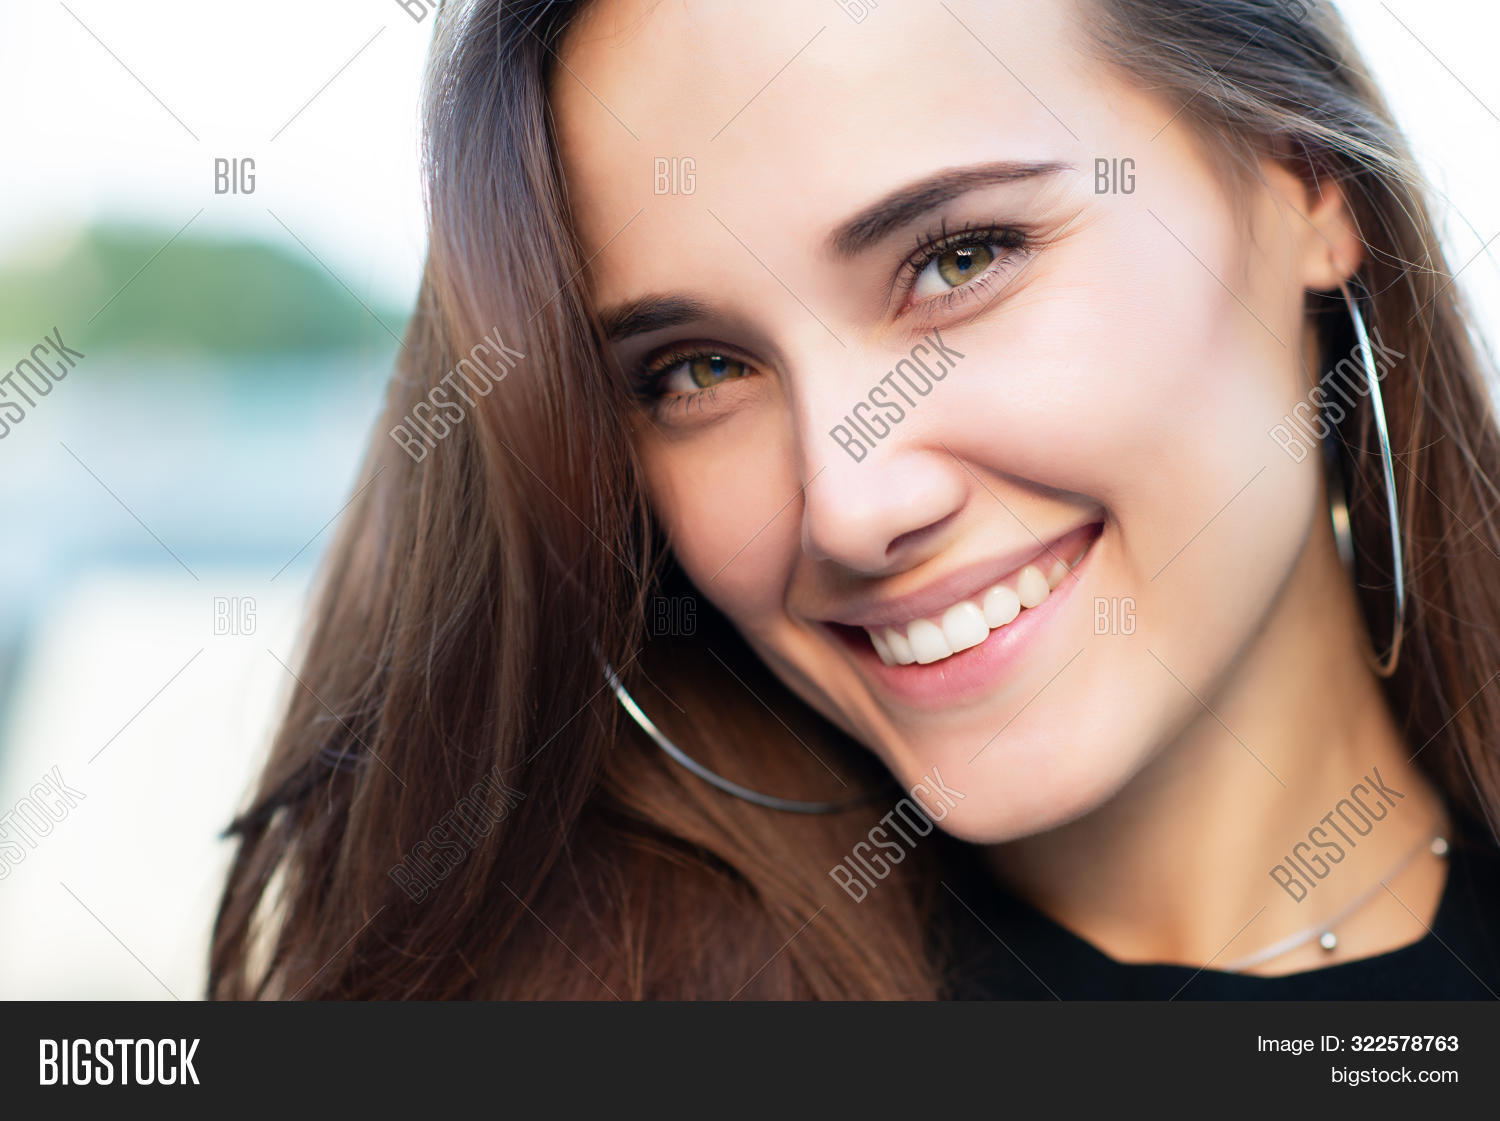 Young attractive woman with perfect smile, summer outdoor portrait. Charming cheerful girl smiling a